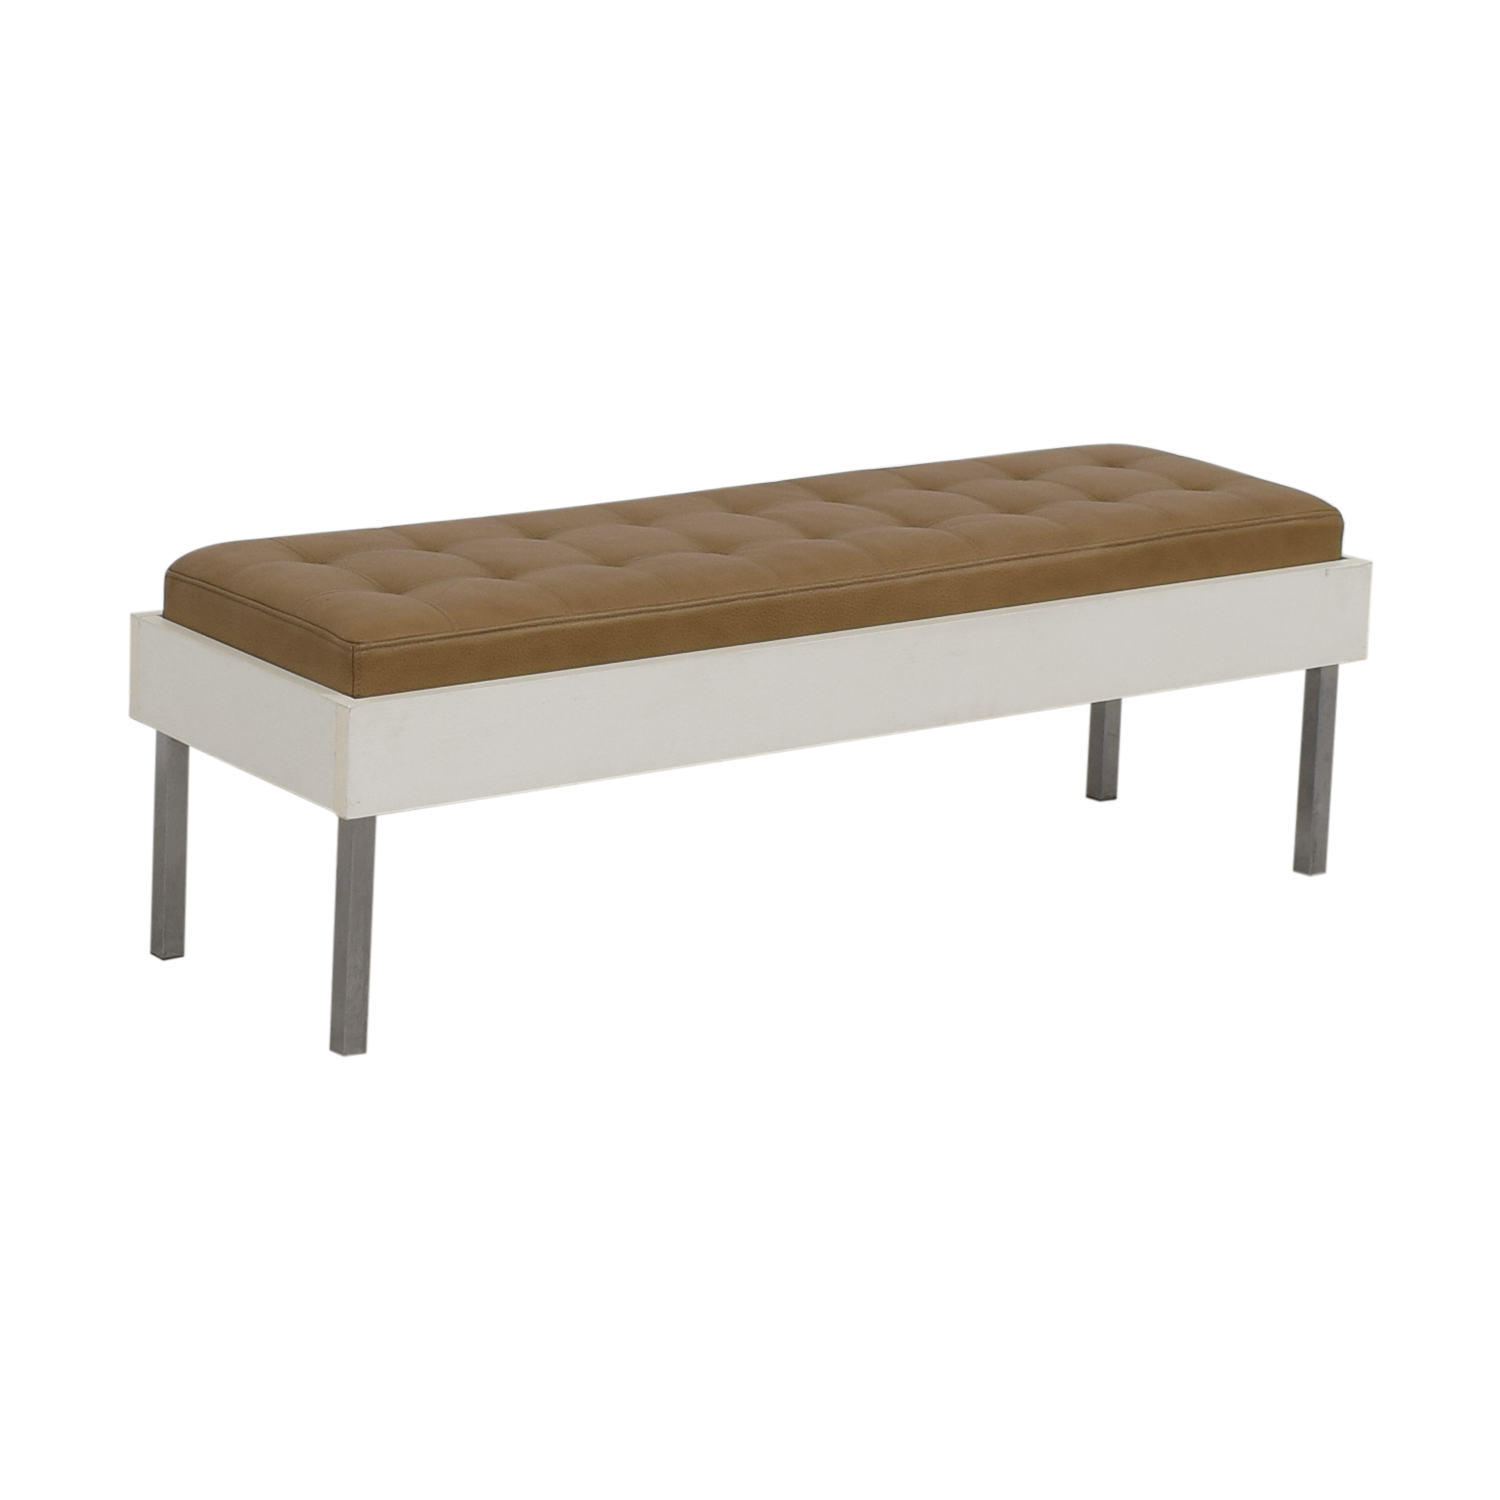 Furniture Masters Furniture Masters Wood and Leather Tufted Bench on sale